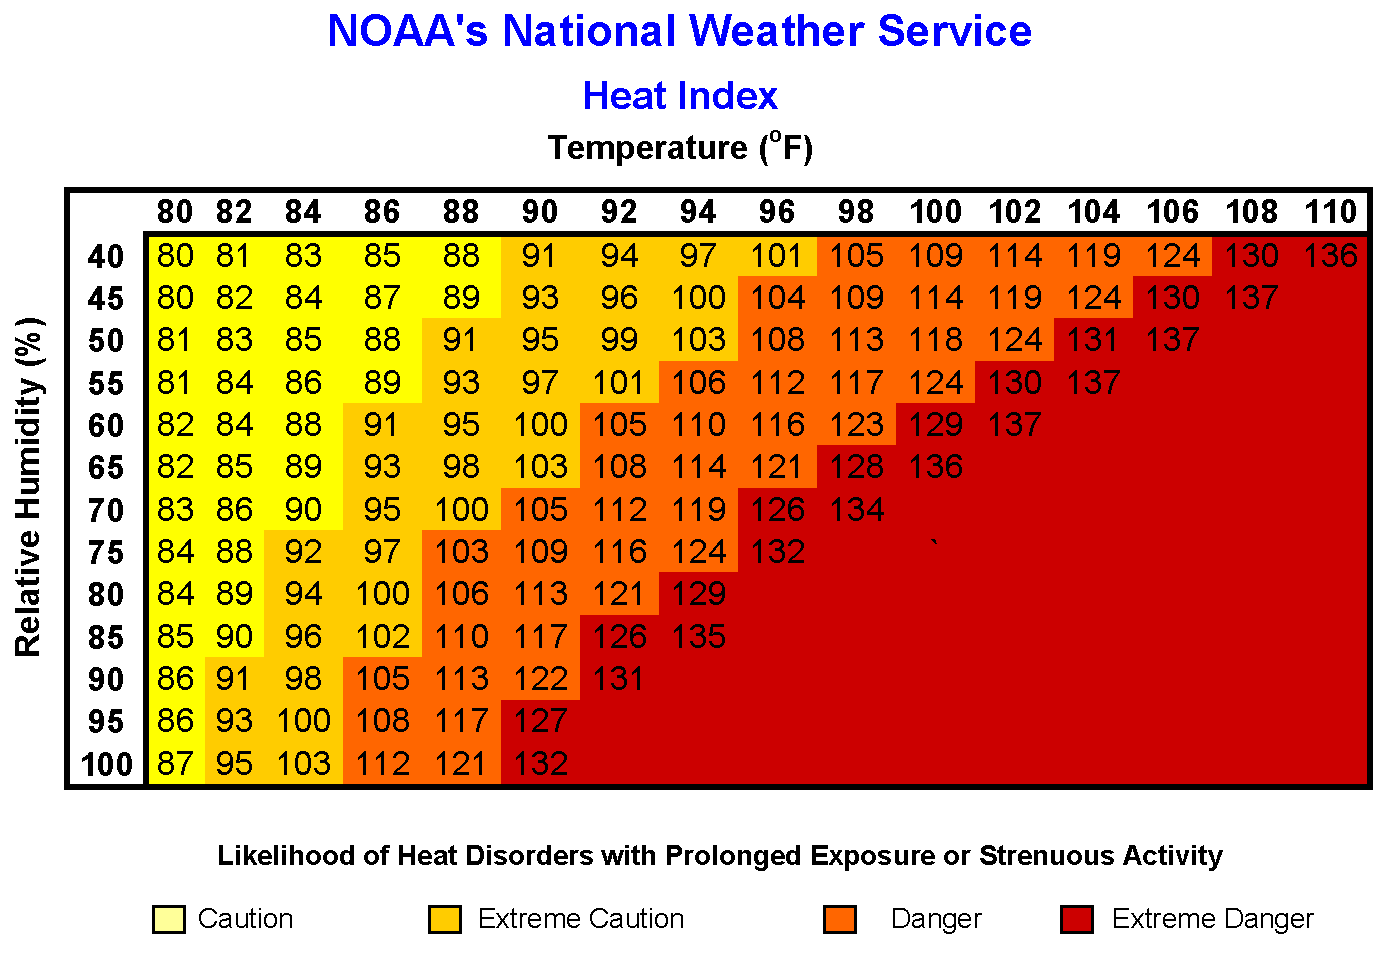 heat index grid from NOAA